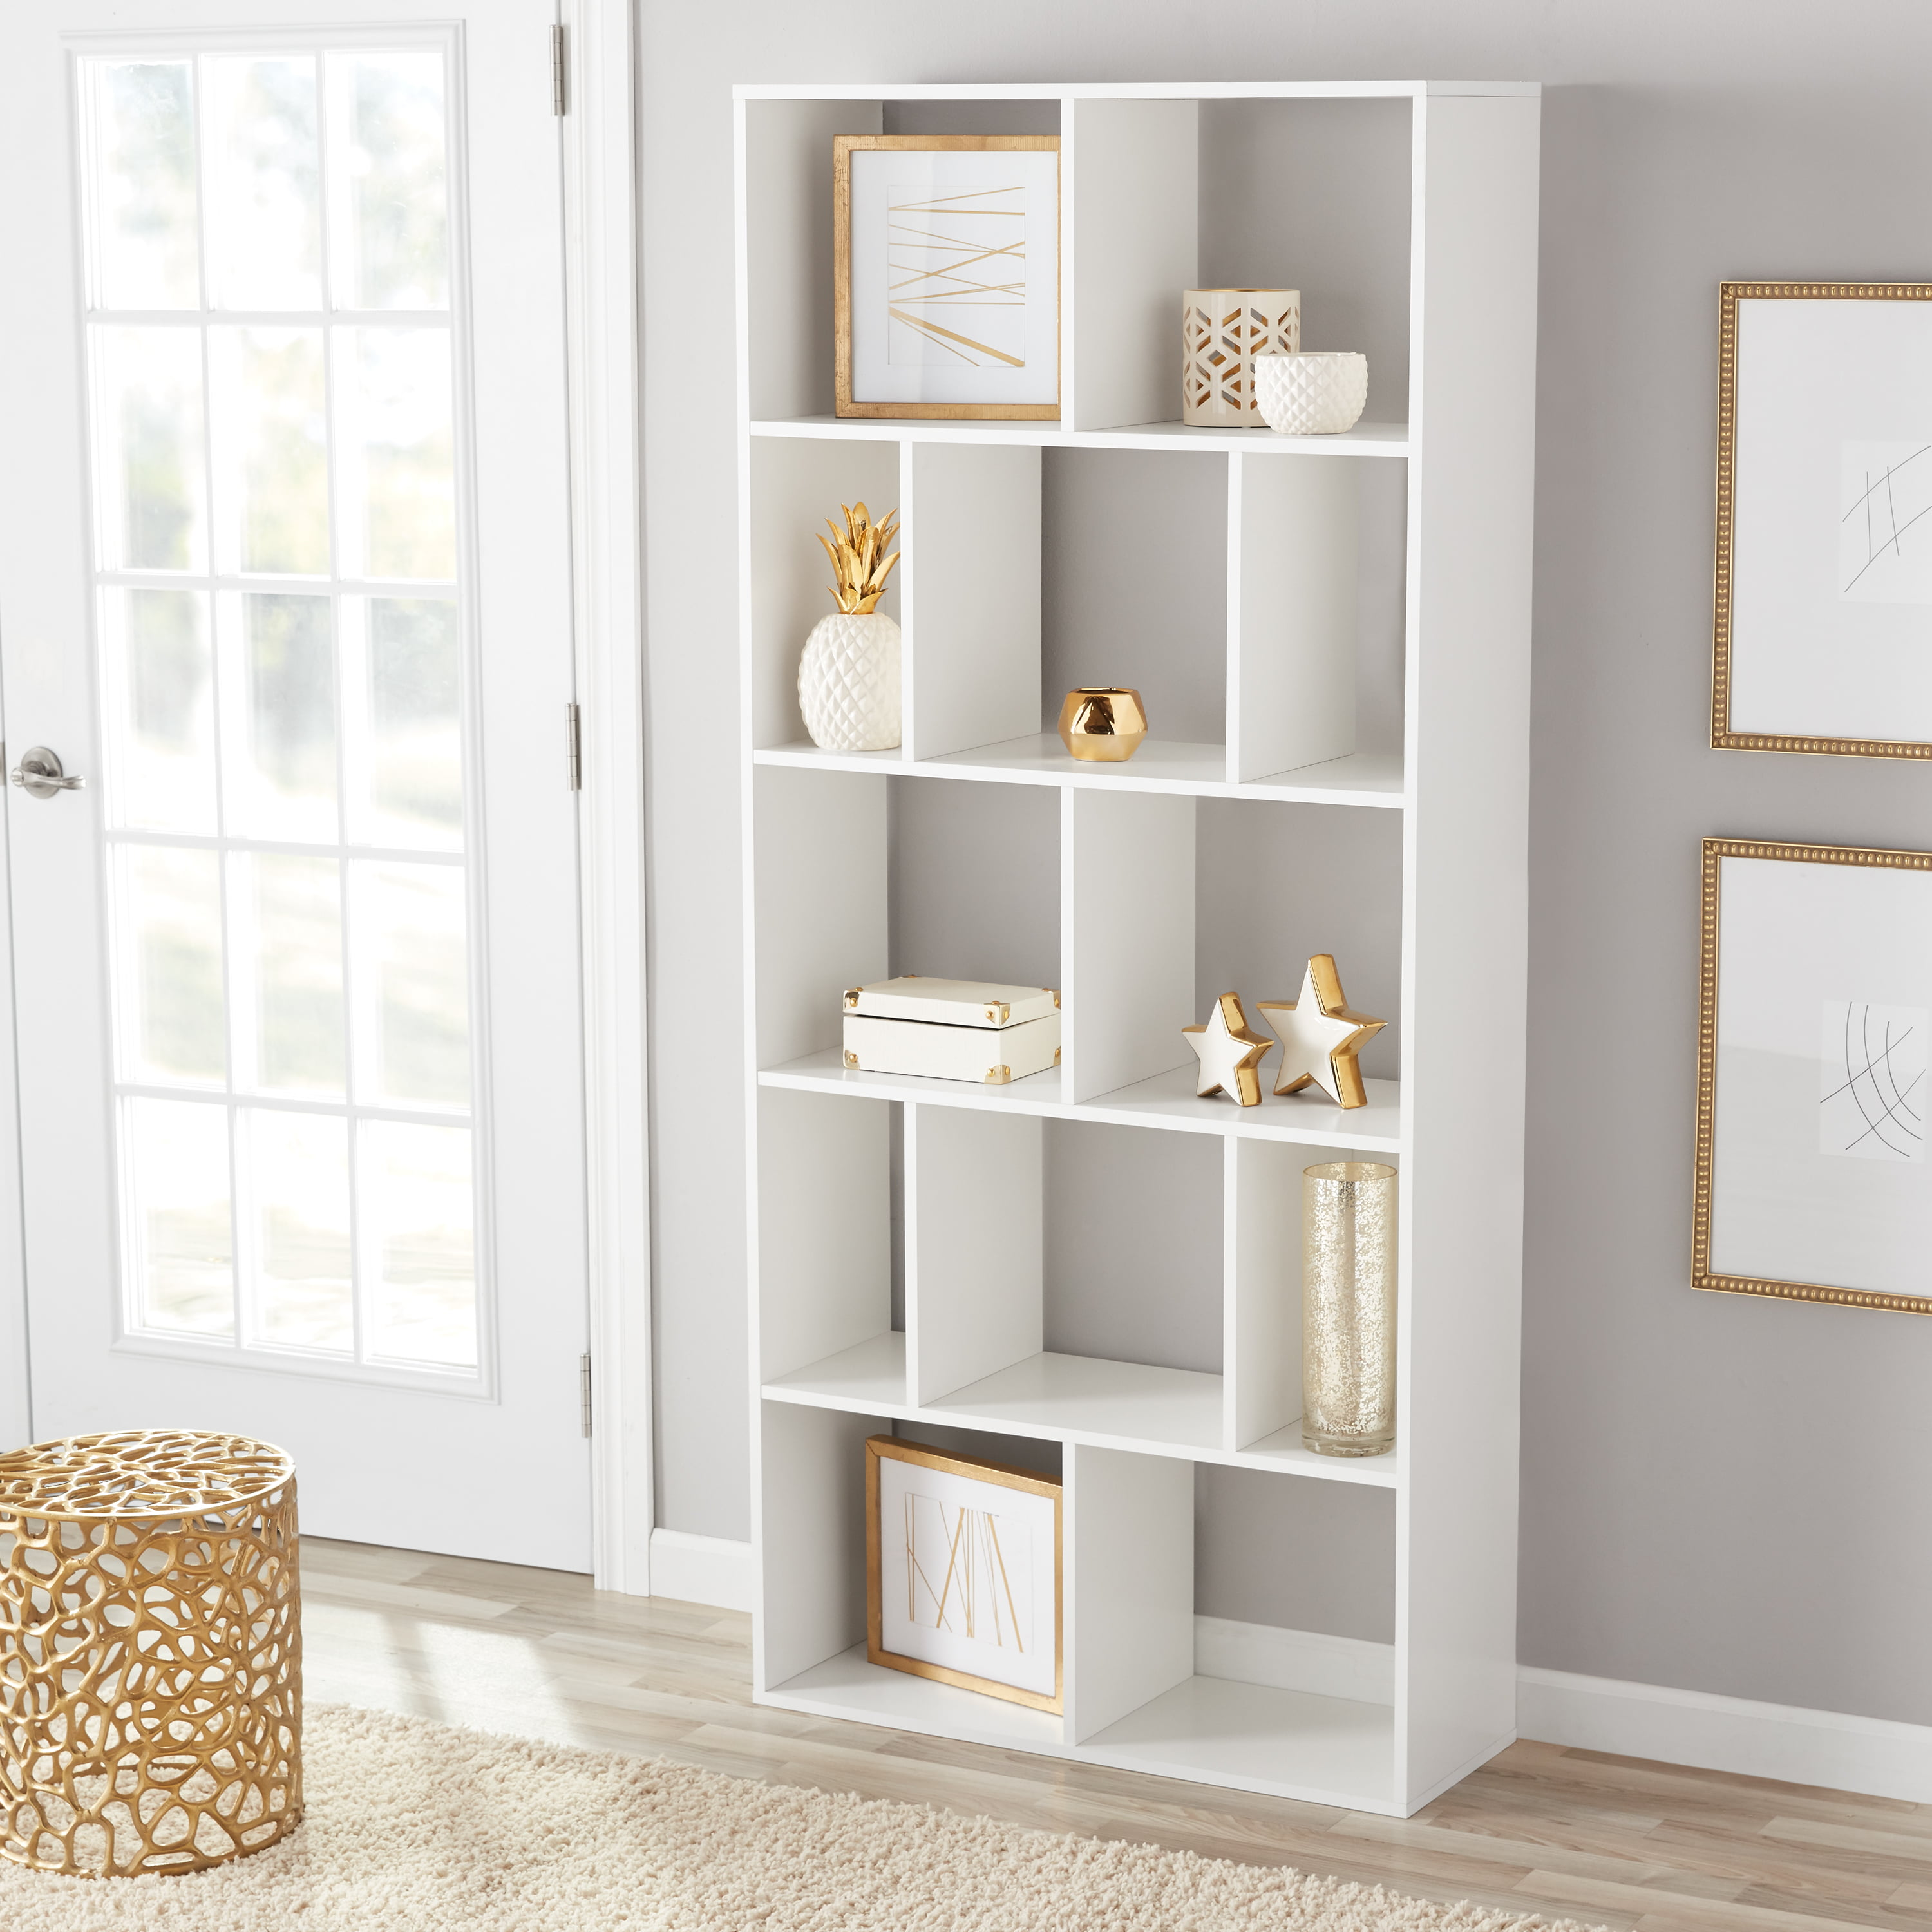 Details About New Large 12 Cube Wall Unit Cube Bookcase Storage Display Stand Room Divider